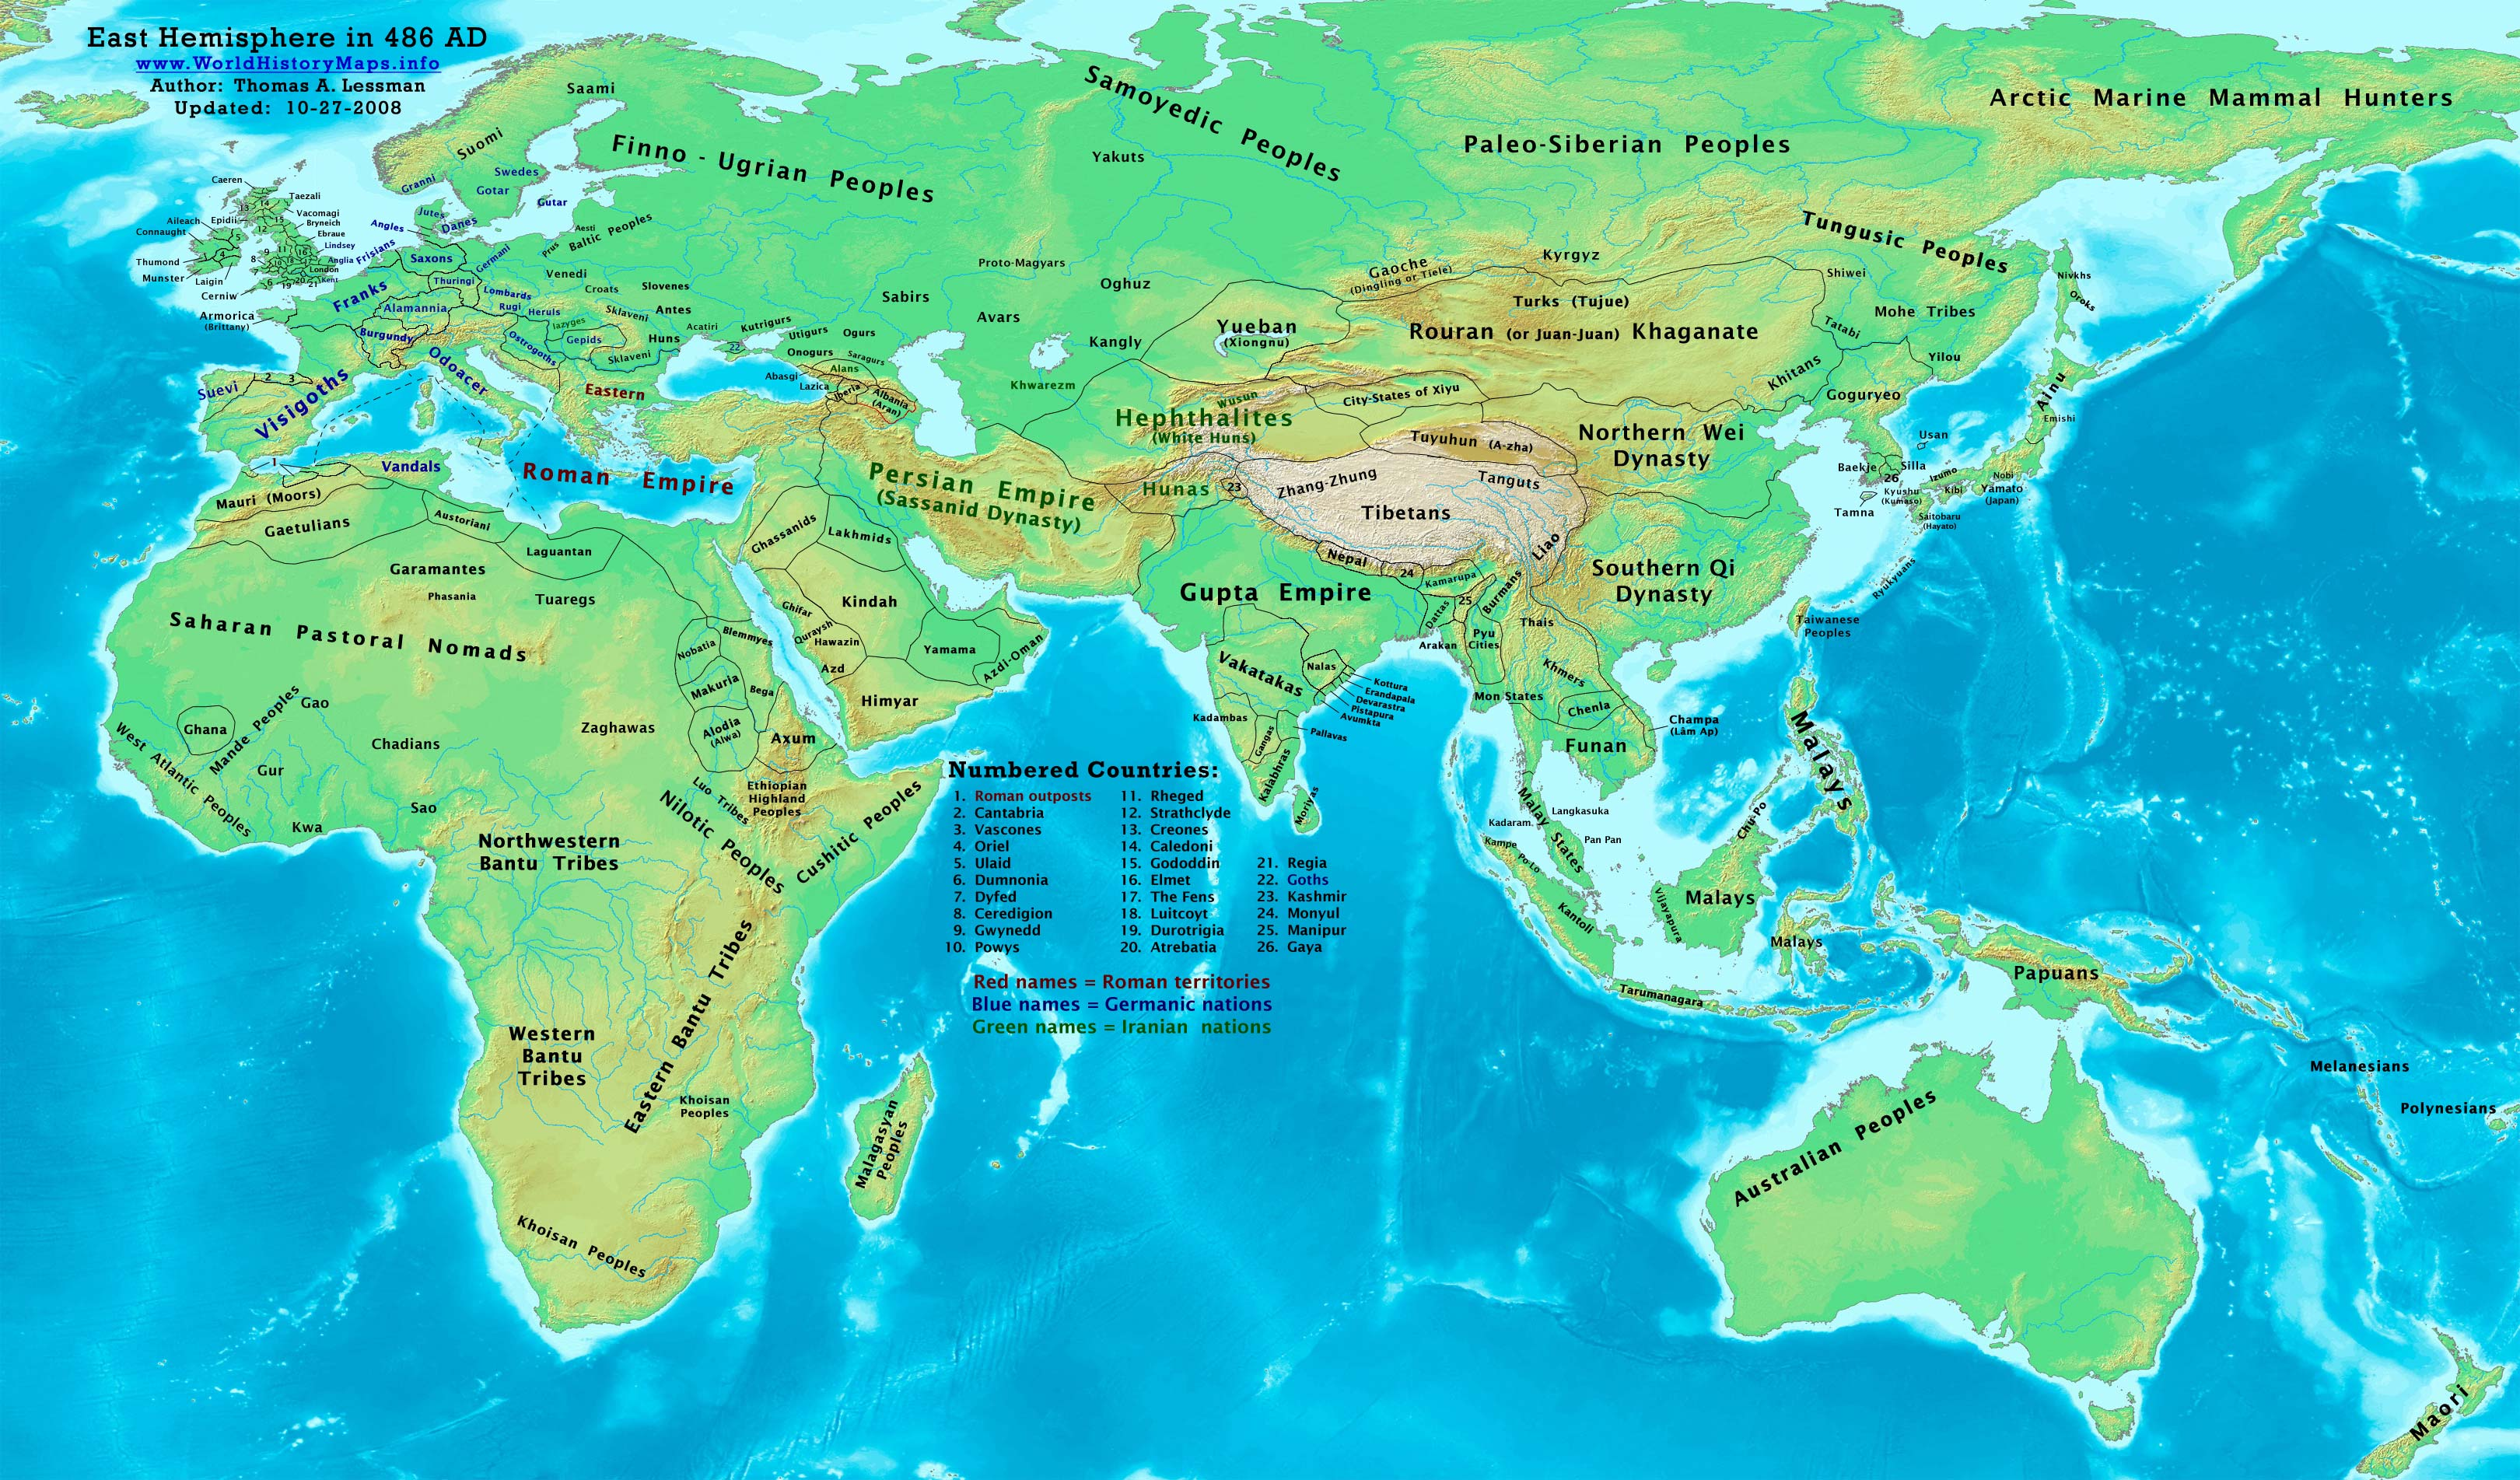 Also Edited Maps Of Hephthalites In 500 AD And Yueban In 480 AD To Show  Southern Qi Dynasty.